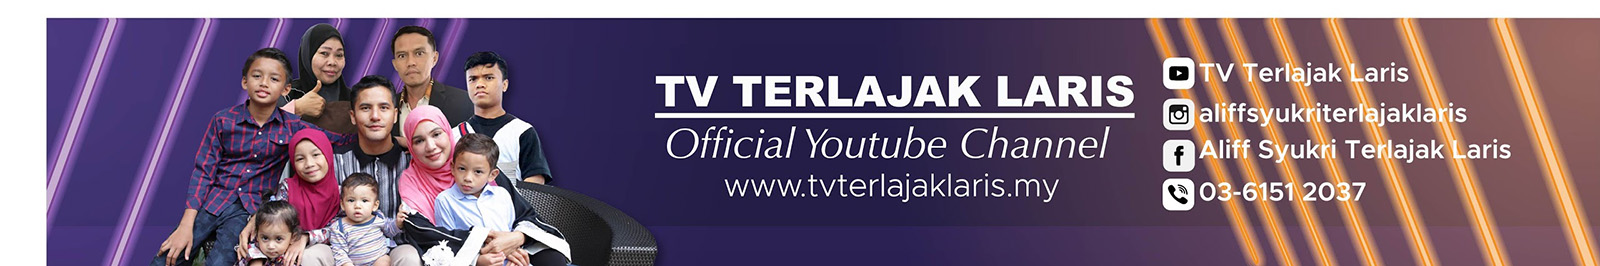 TV Terlajak Laris YouTube Channel